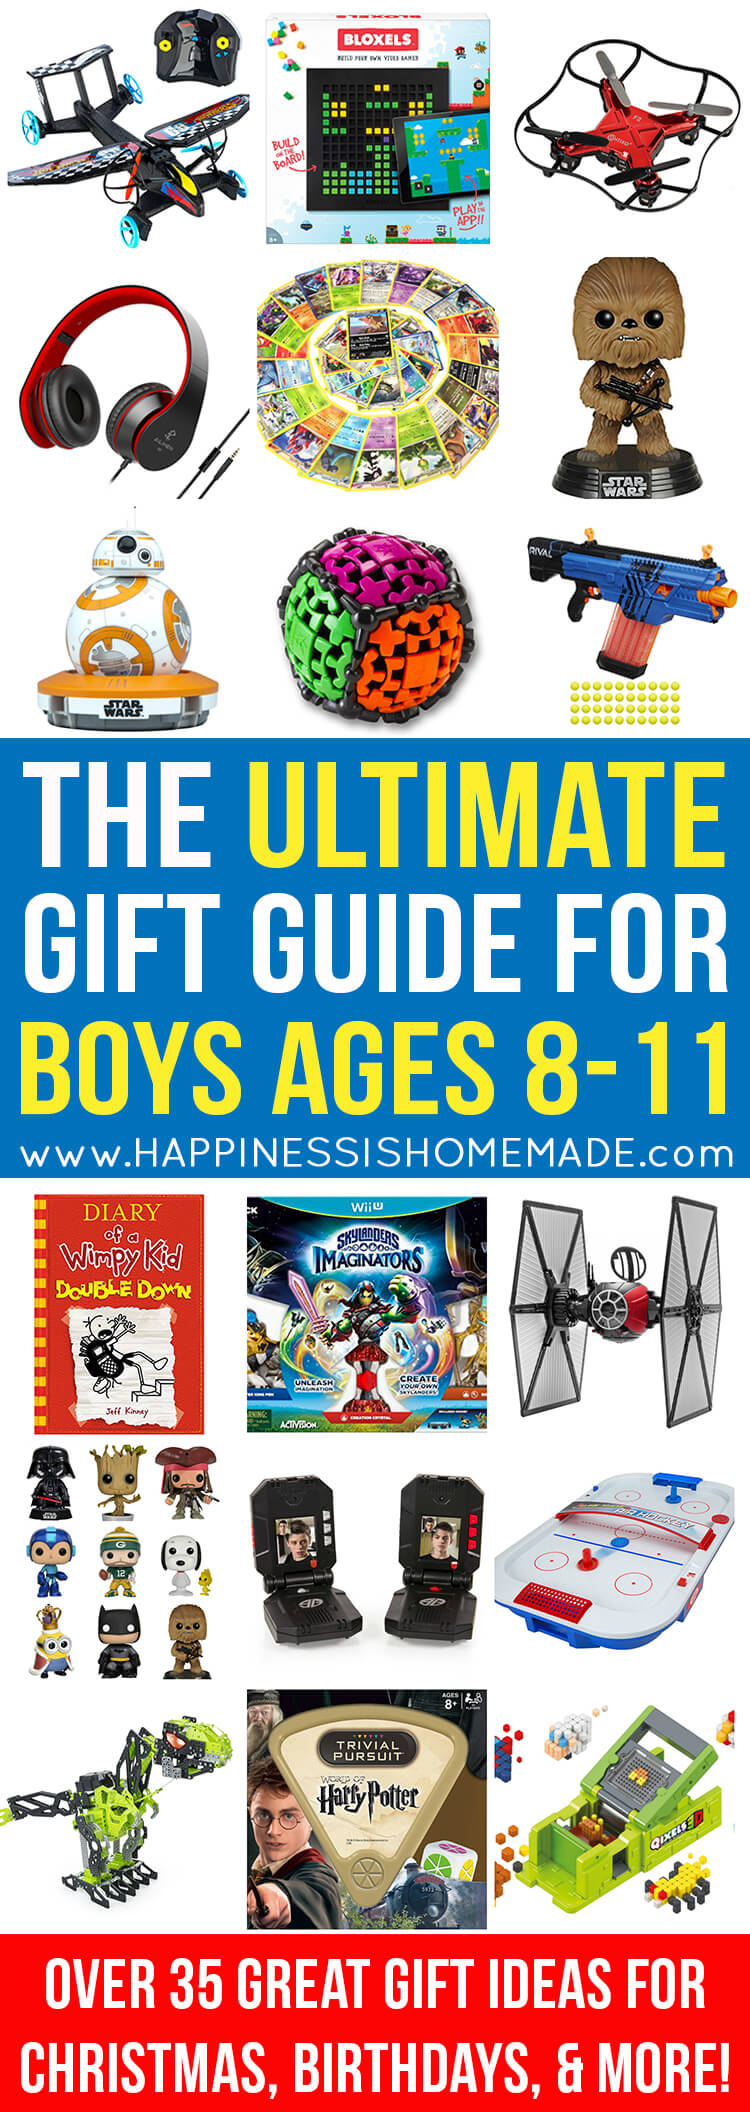 Christmas Presents For 8 Year Olds.The Best Gift Ideas For Boys Ages 8 11 Happiness Is Homemade